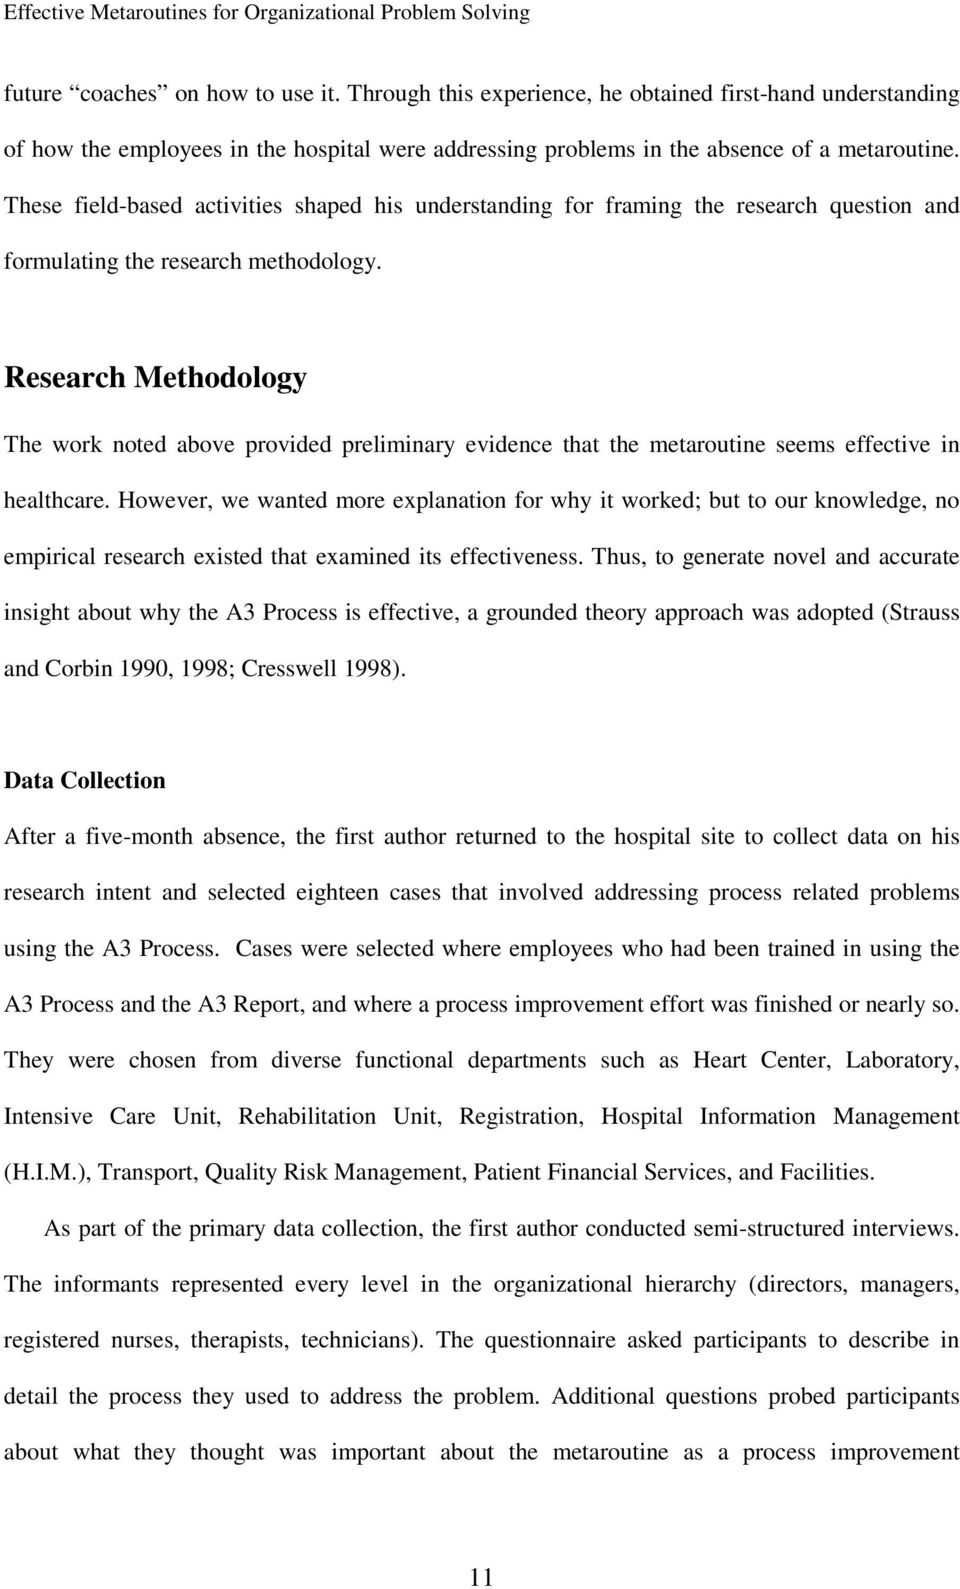 Research Methodology The work noted above provided preliminary evidence that the metaroutine seems effective in healthcare.